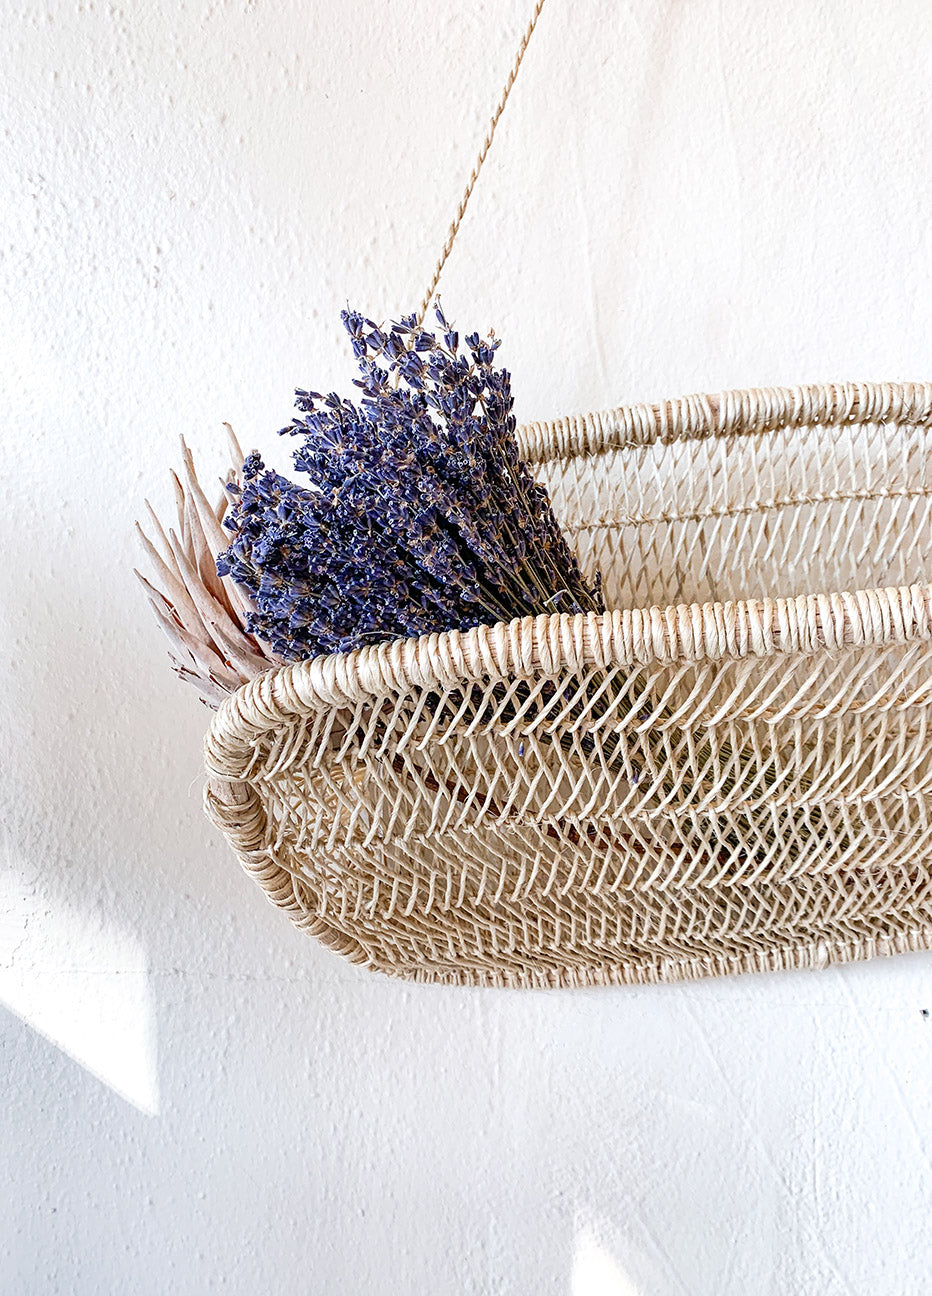 Nenes Handmade Tree Bark Hanging Basket